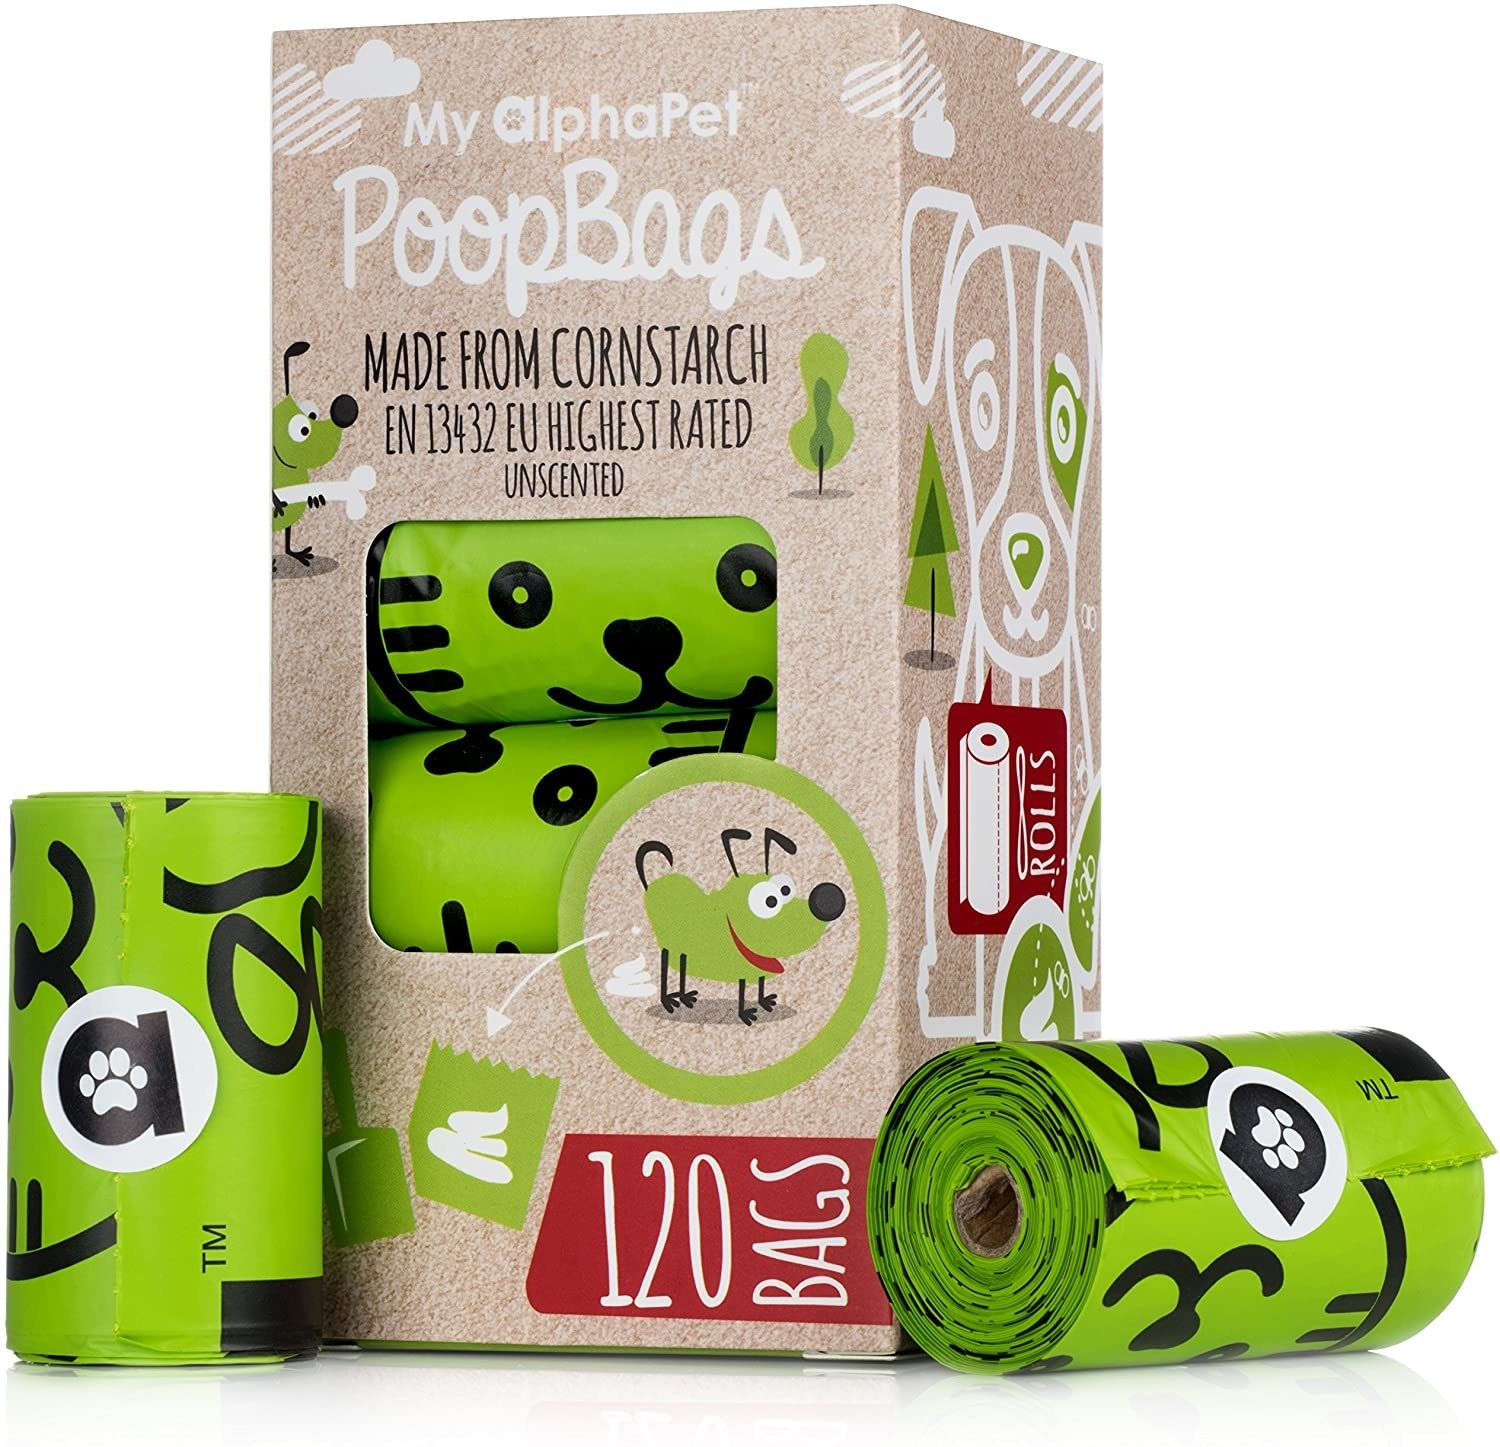 A box of the green compost bags with cartoons on them